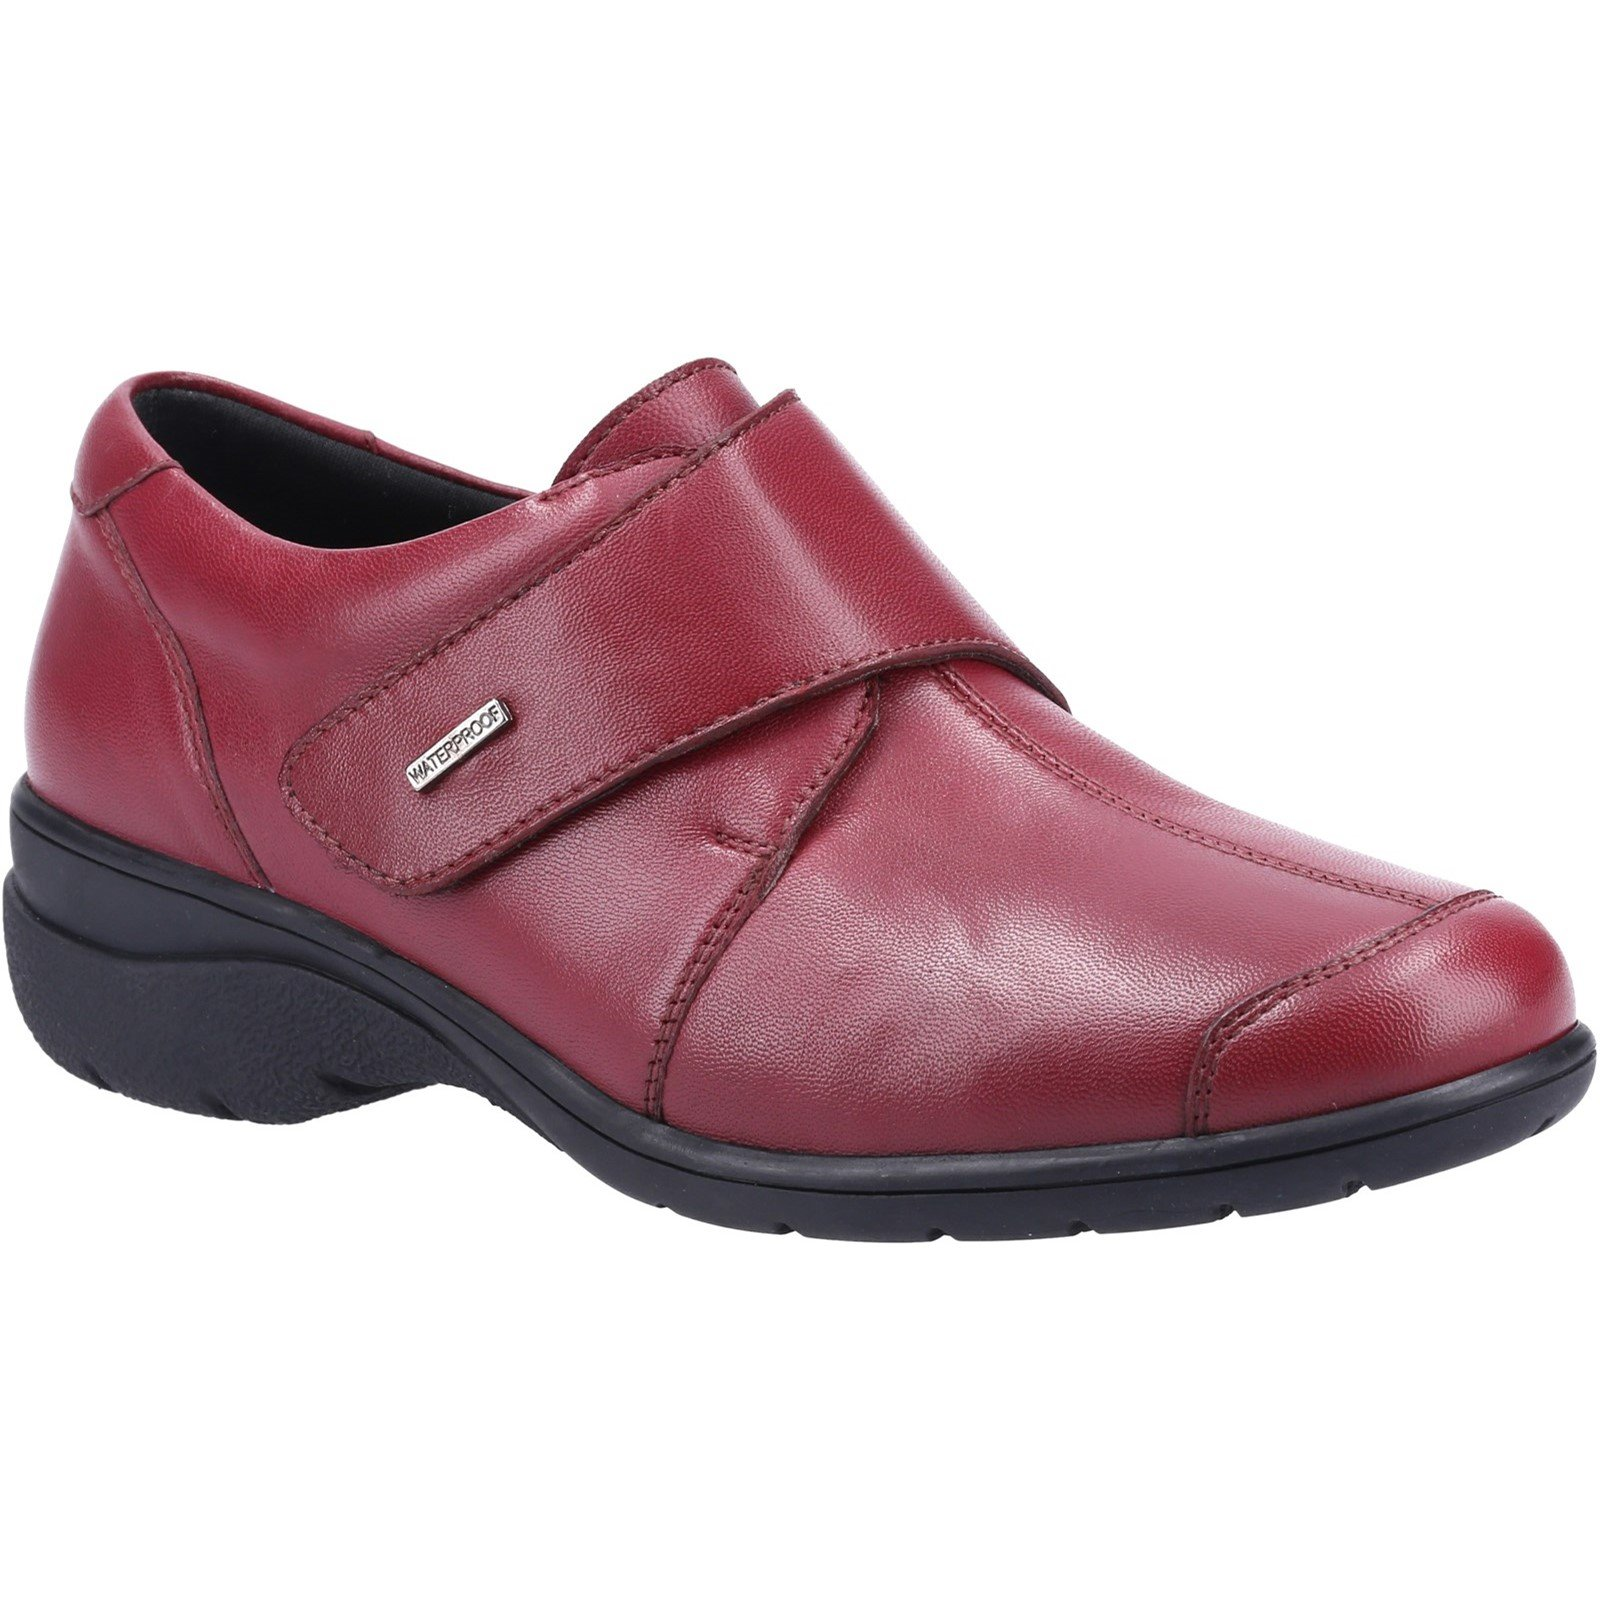 Cotswold Women's Cranham Touch Fastening Trainer Various Colours 32980 - Red 5